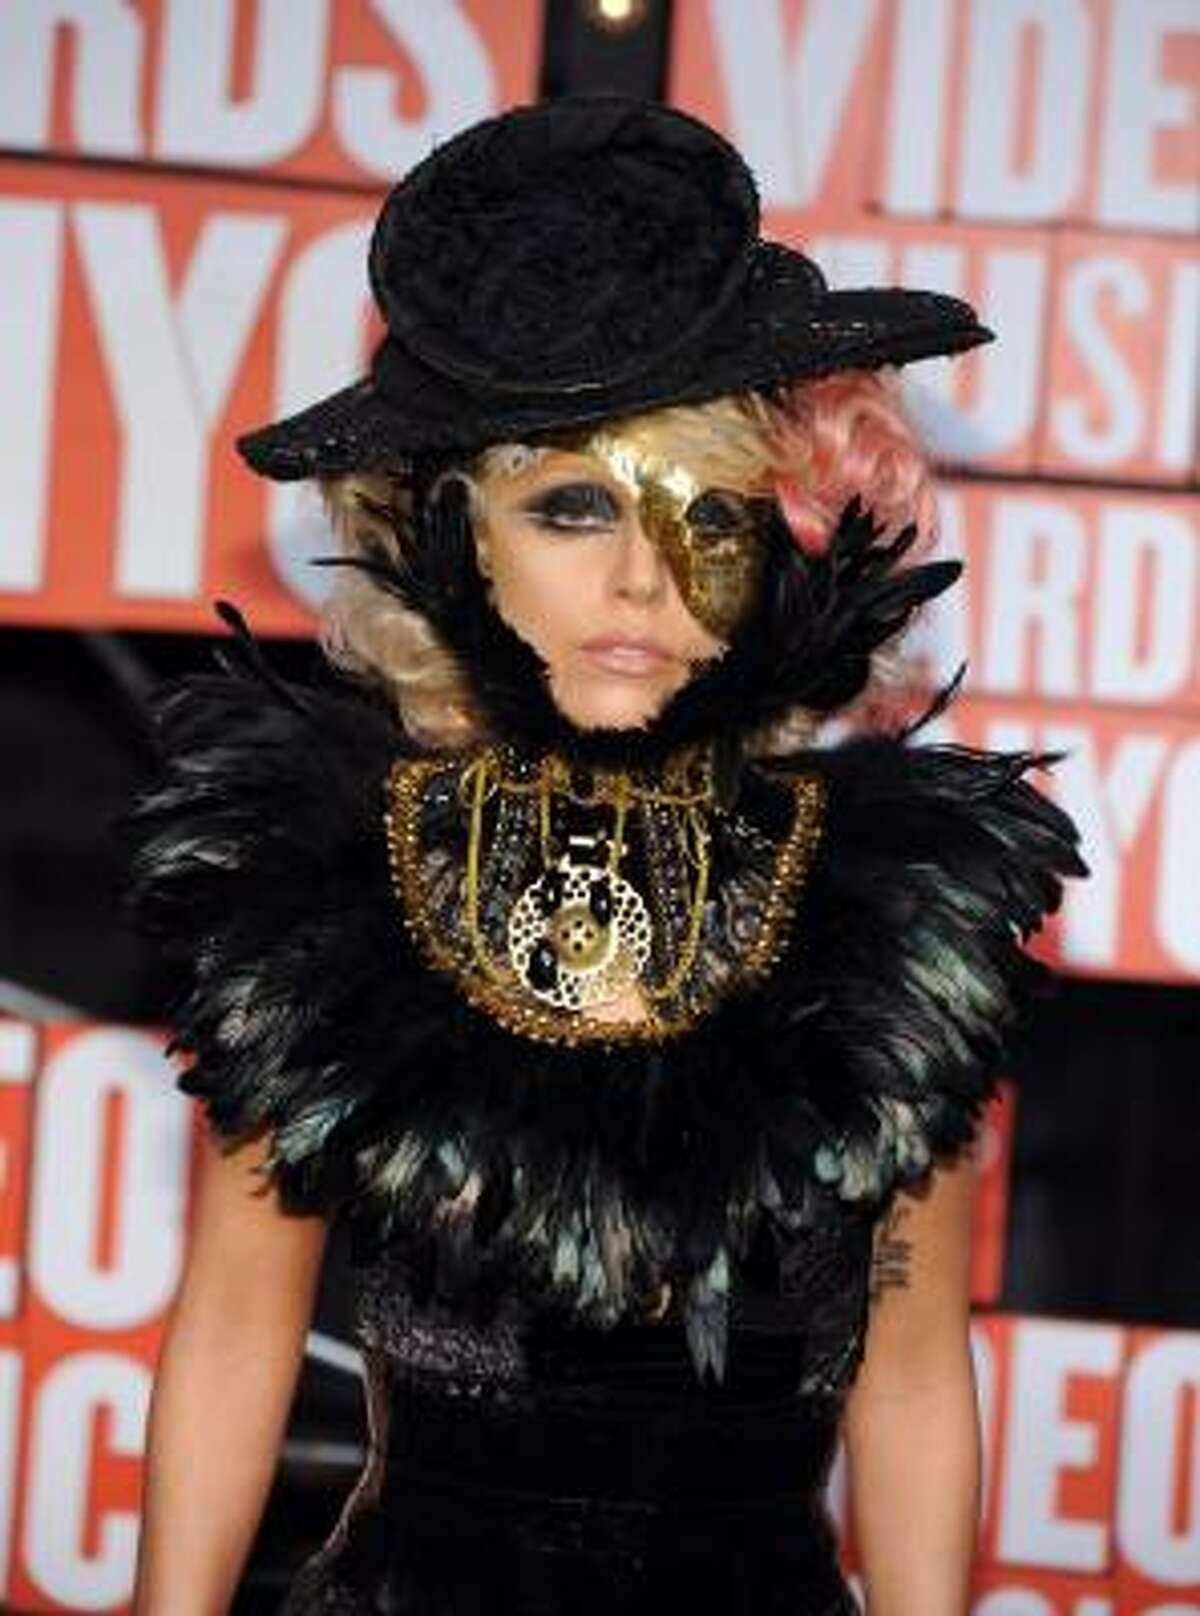 Lady Gaga has been named the creepiest musician in an online poll after her eccentric performance of Paparazzi on the MTV Video Music Awards took her scary factor to a whole new level. Here are other musicians known for their weirdness.